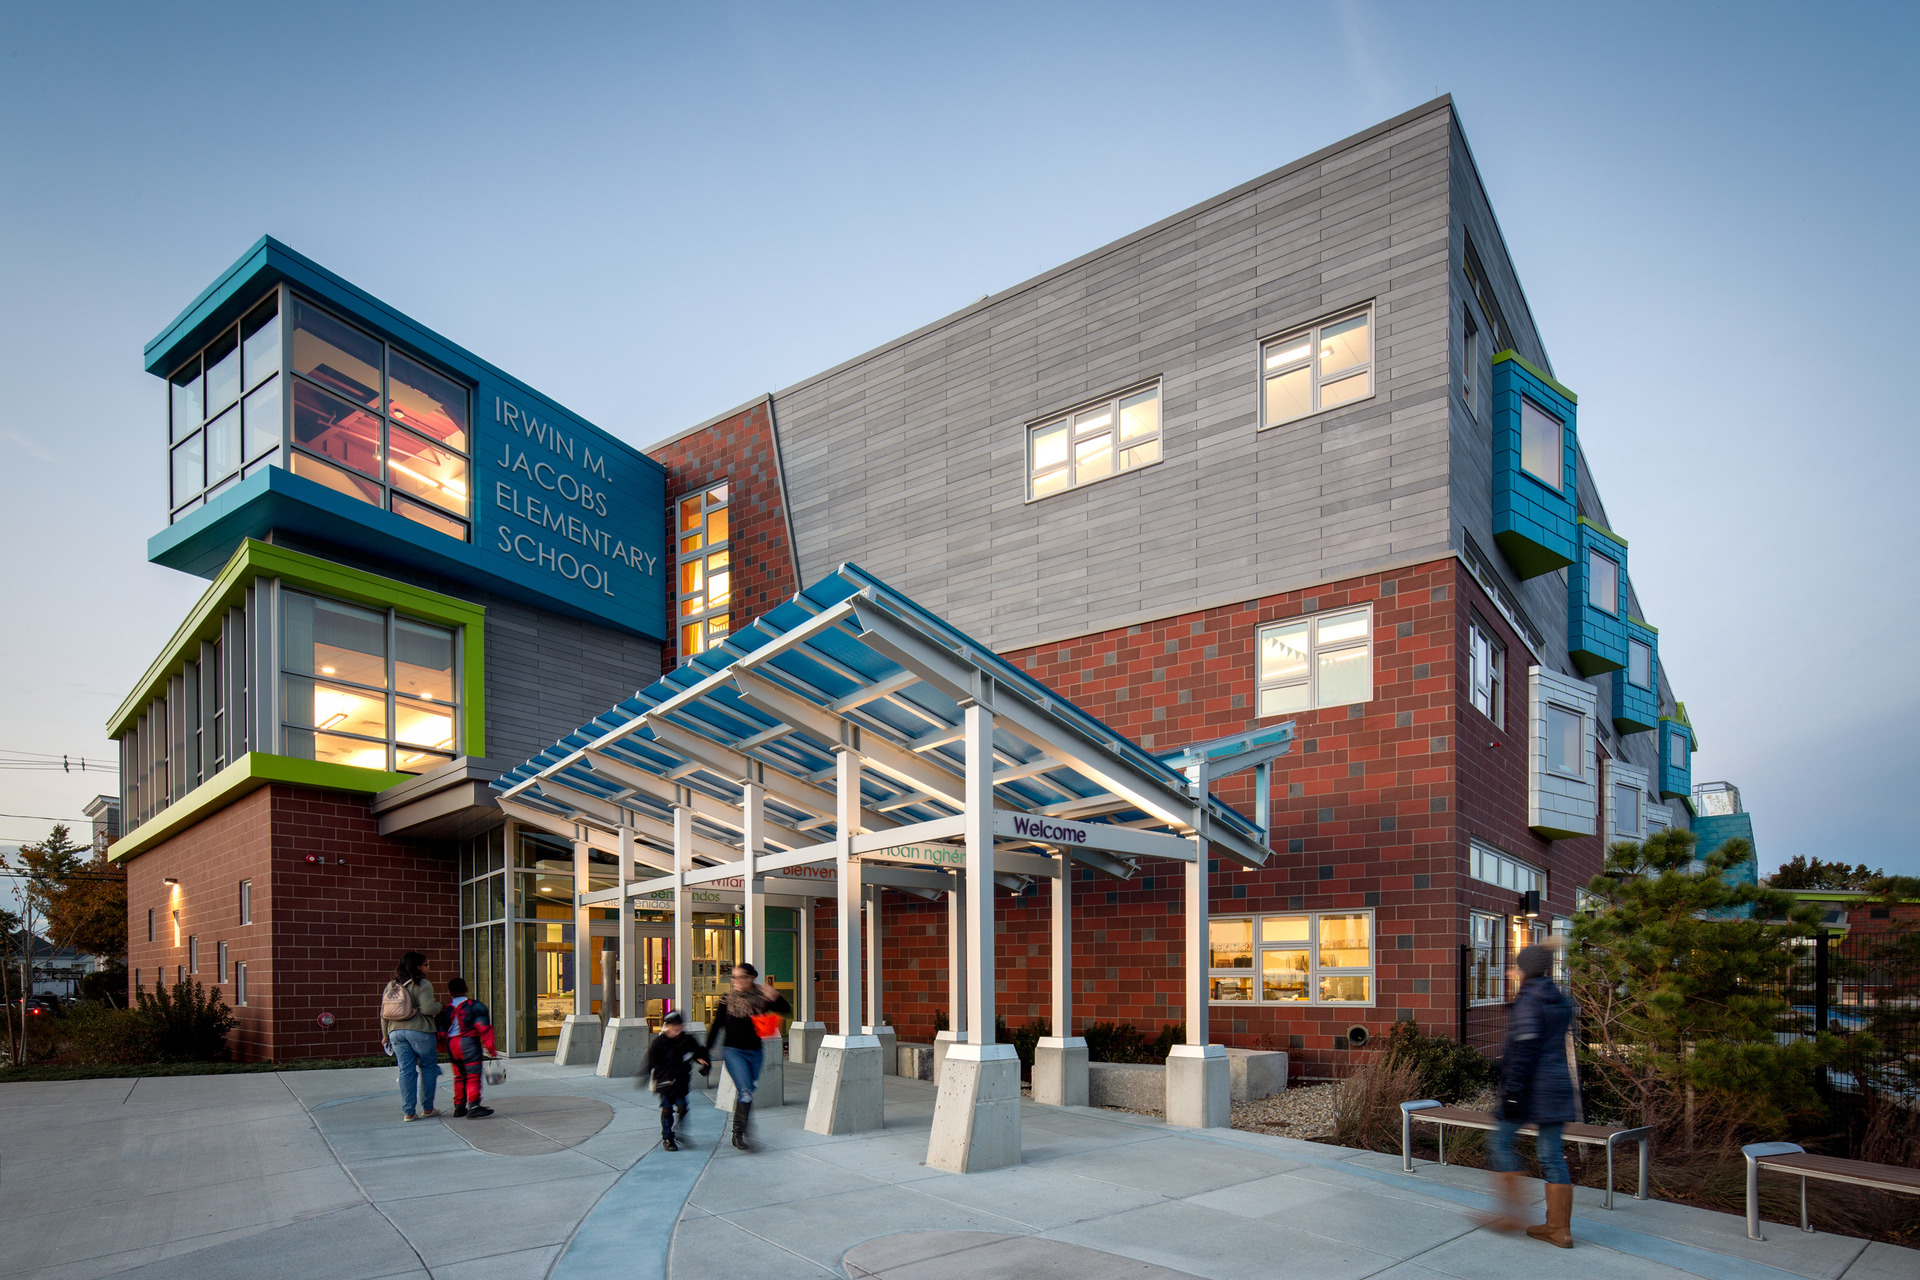 The vibrant and colorful main entrance at Irwin M. Jacobson Elementary in New Bedford, MA. Pella's Architect Series® Traditional windows were used for the various windows systems throughout the school.